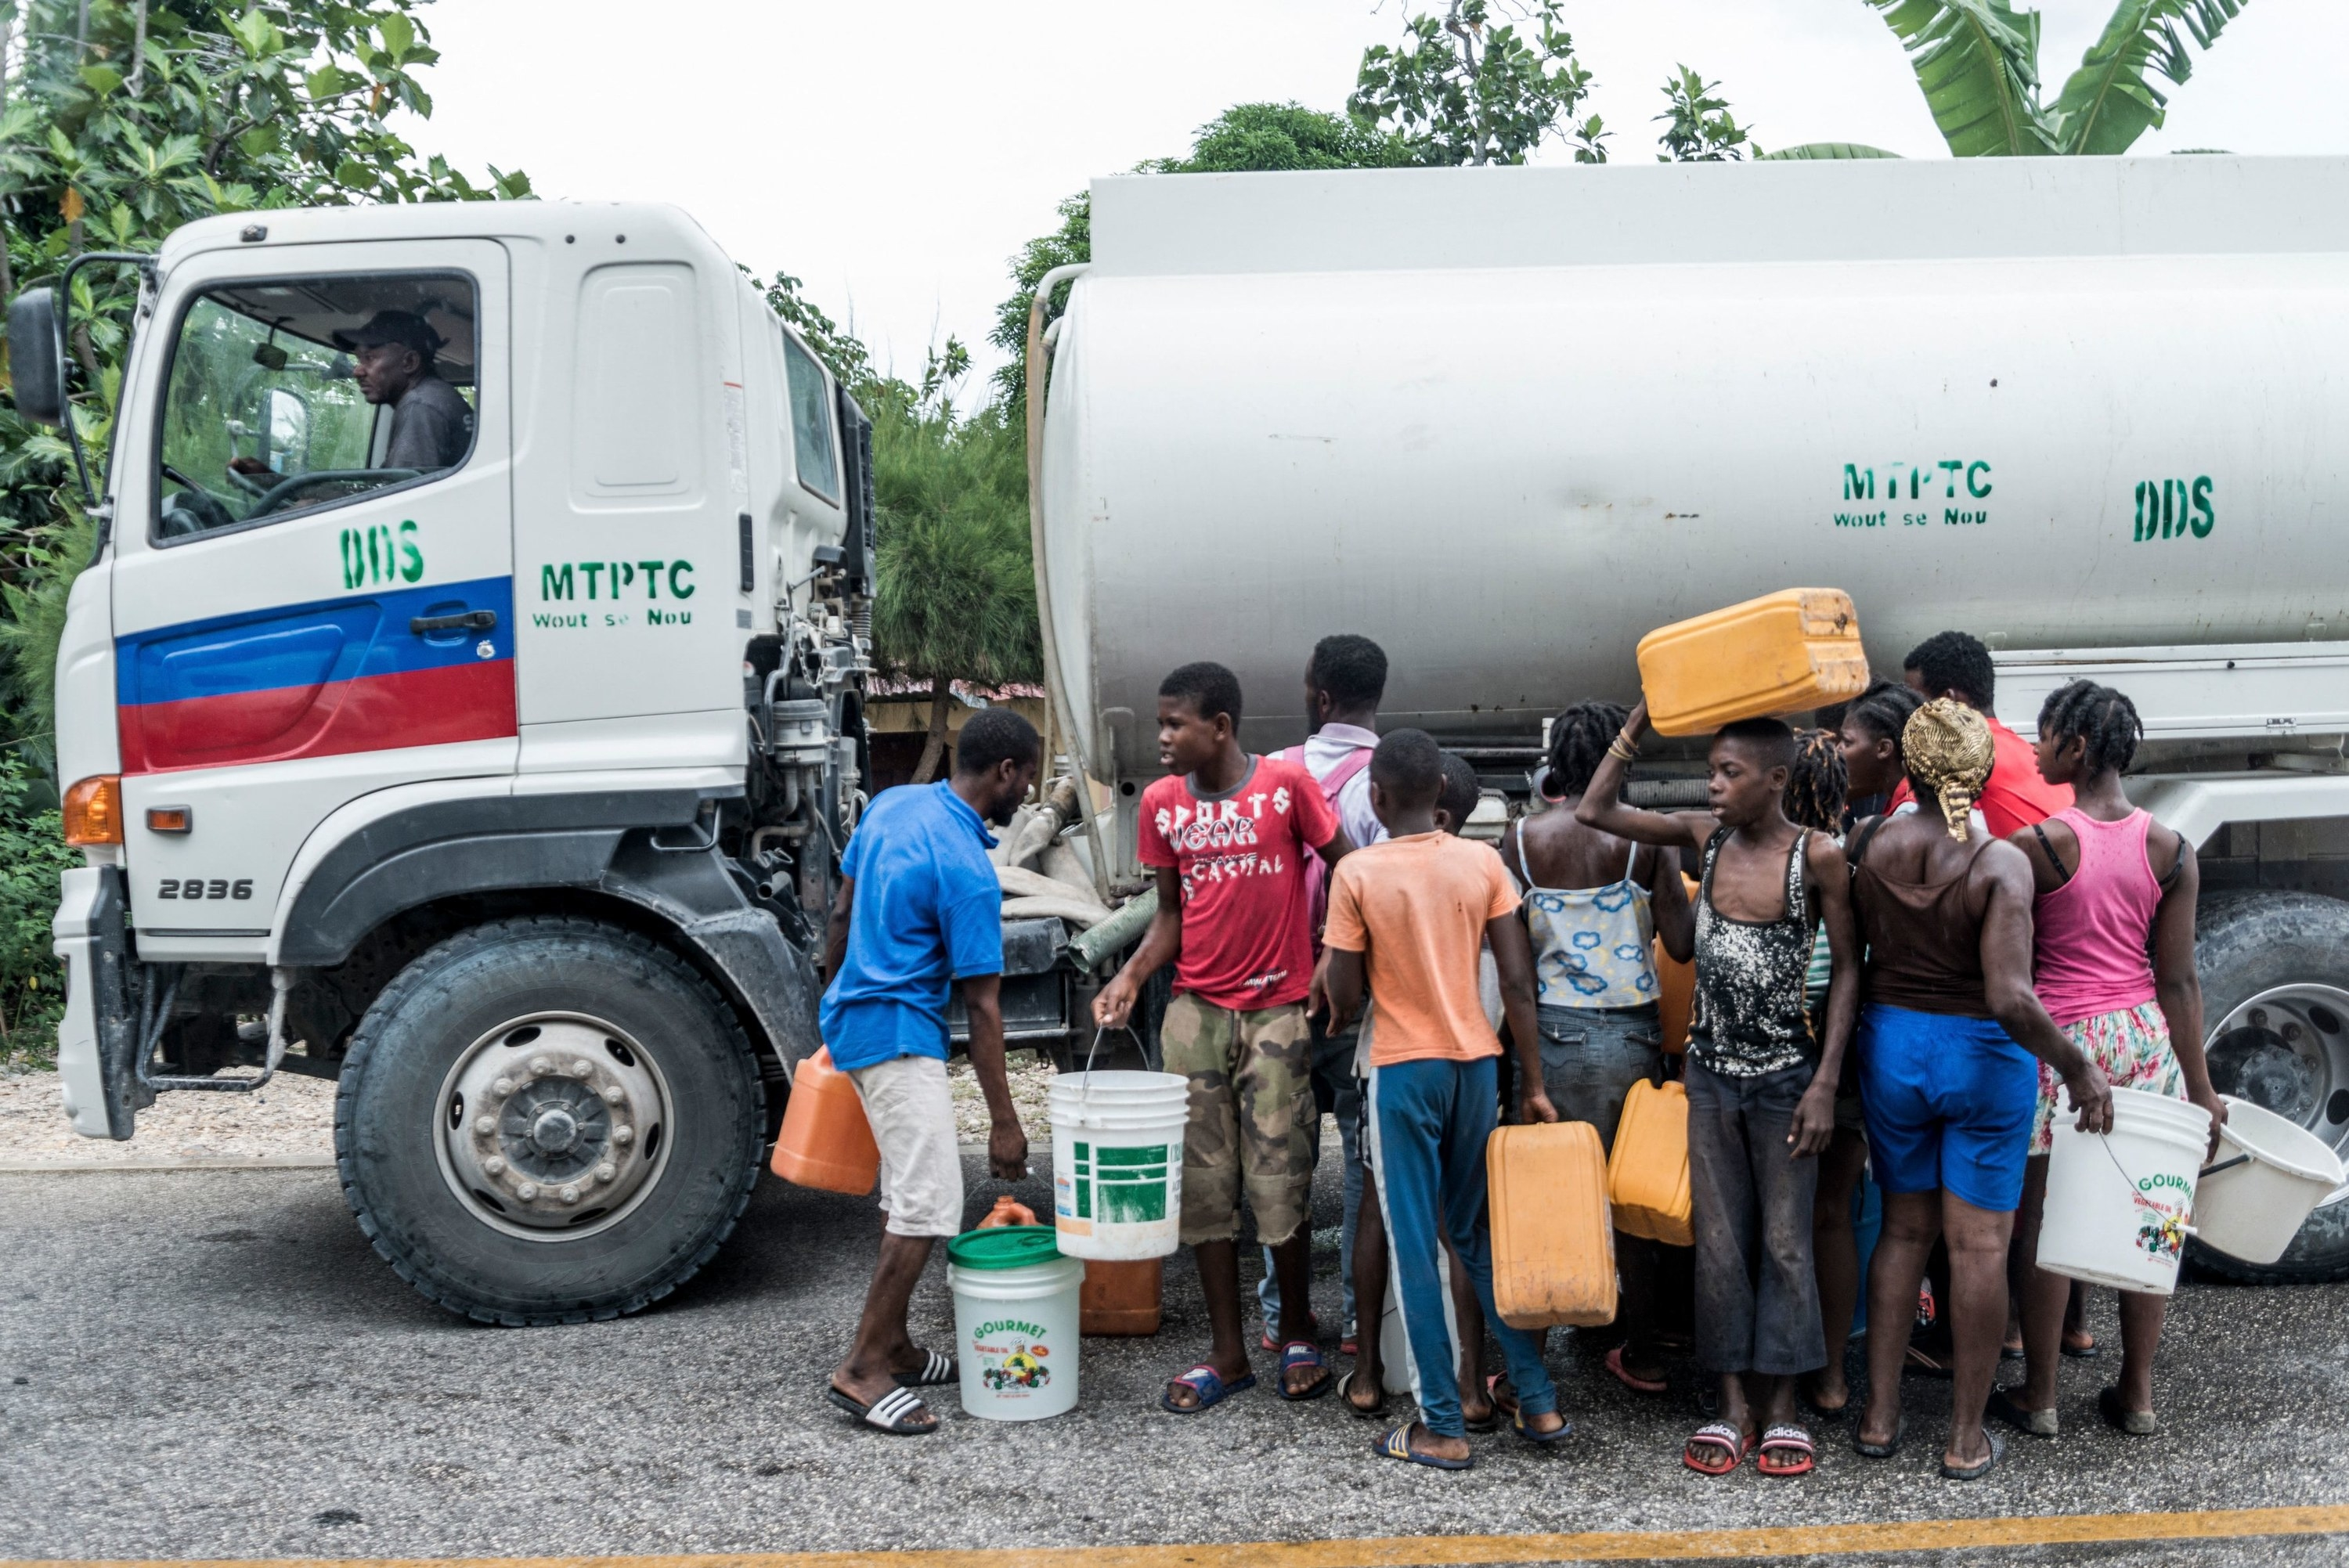 Haiti residents wait in line for water by a tank truck